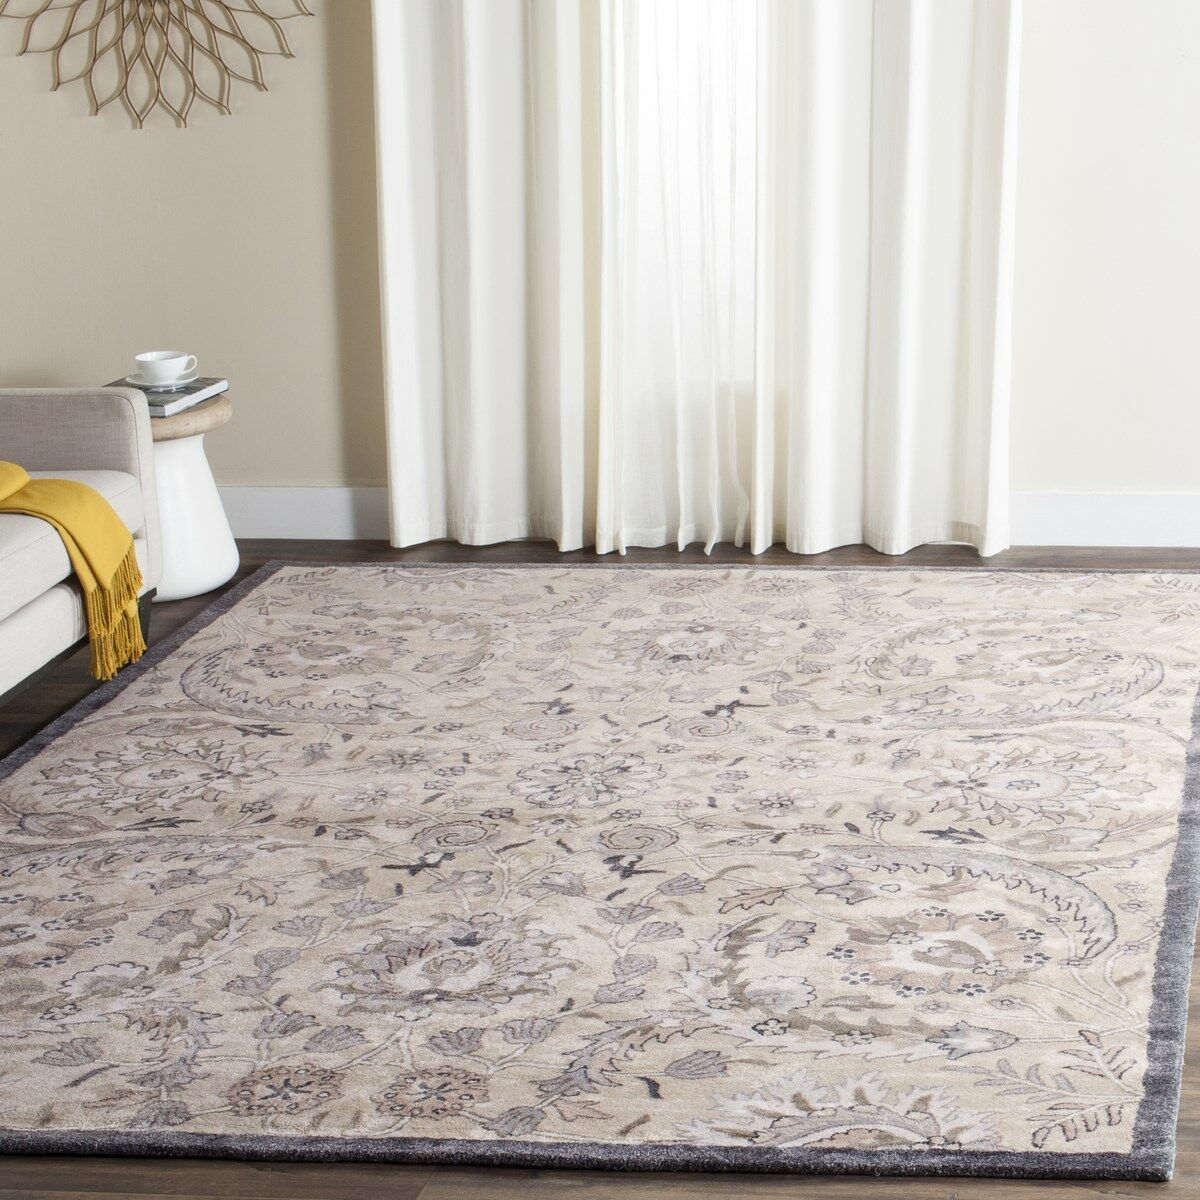 Davila Hand Tufted Area Rug Rug Size: Rectangle 6' x 9'